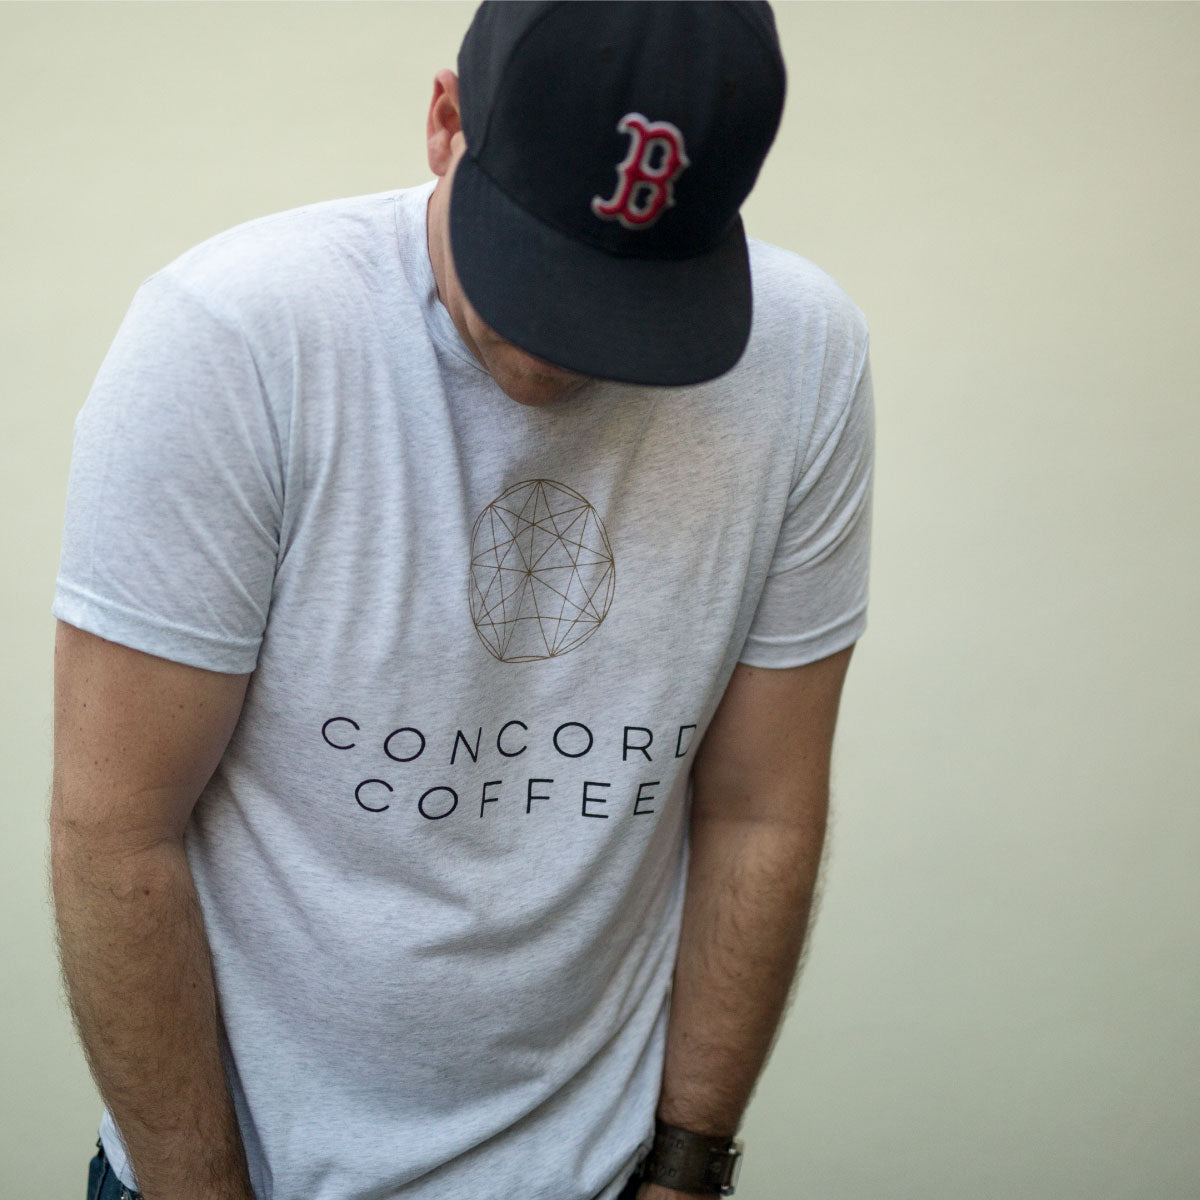 Heather White Concord Tee